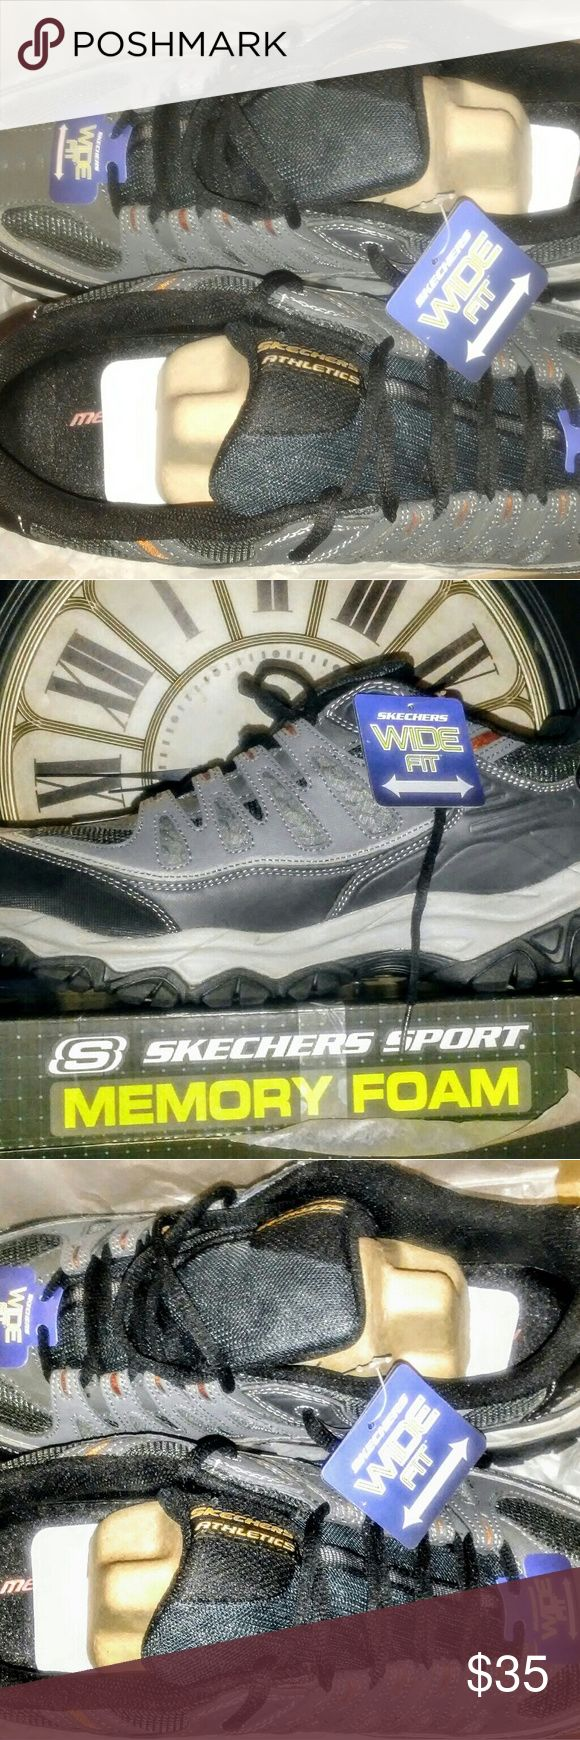 New! Men's Skechers Sport Sneakers Size 14 E PRICE IS FIRM Bundle for 15% Discount New! In Box, W/Tags Never Worn.   Men's Skechers Sport Memory Foam Sneakers.   Style: After Burn🔥 Size: 14 E (Wide Width) Color: Charcoal/Gray Skechers Shoes Sneakers